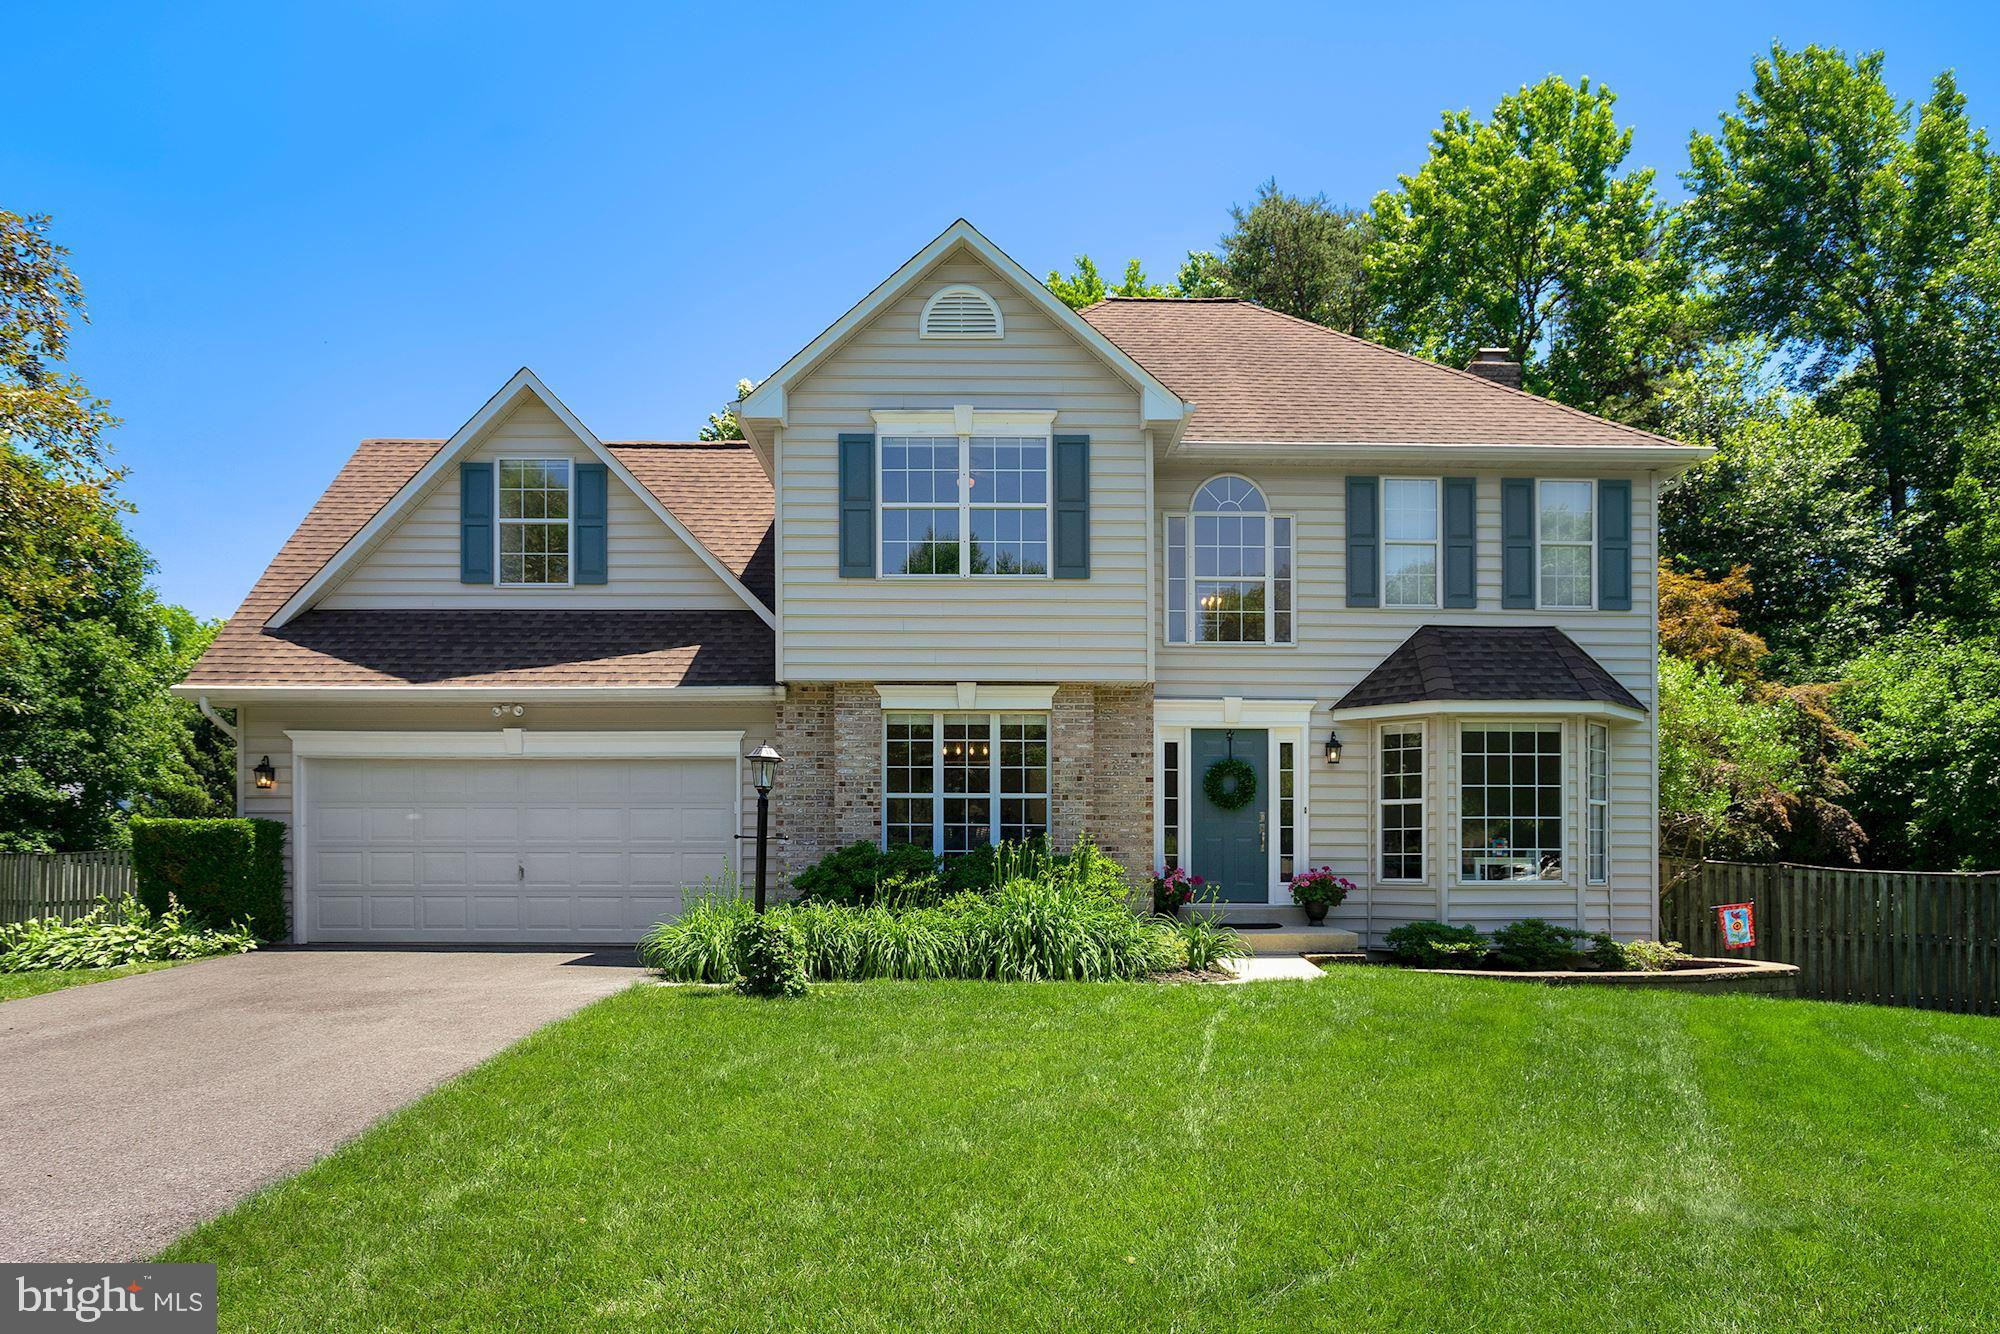 This Gorgeous  Home sits on an Amazing HALF ACRE PREMIUM LOT backing to Wooded Parkland. Enjoy Natur